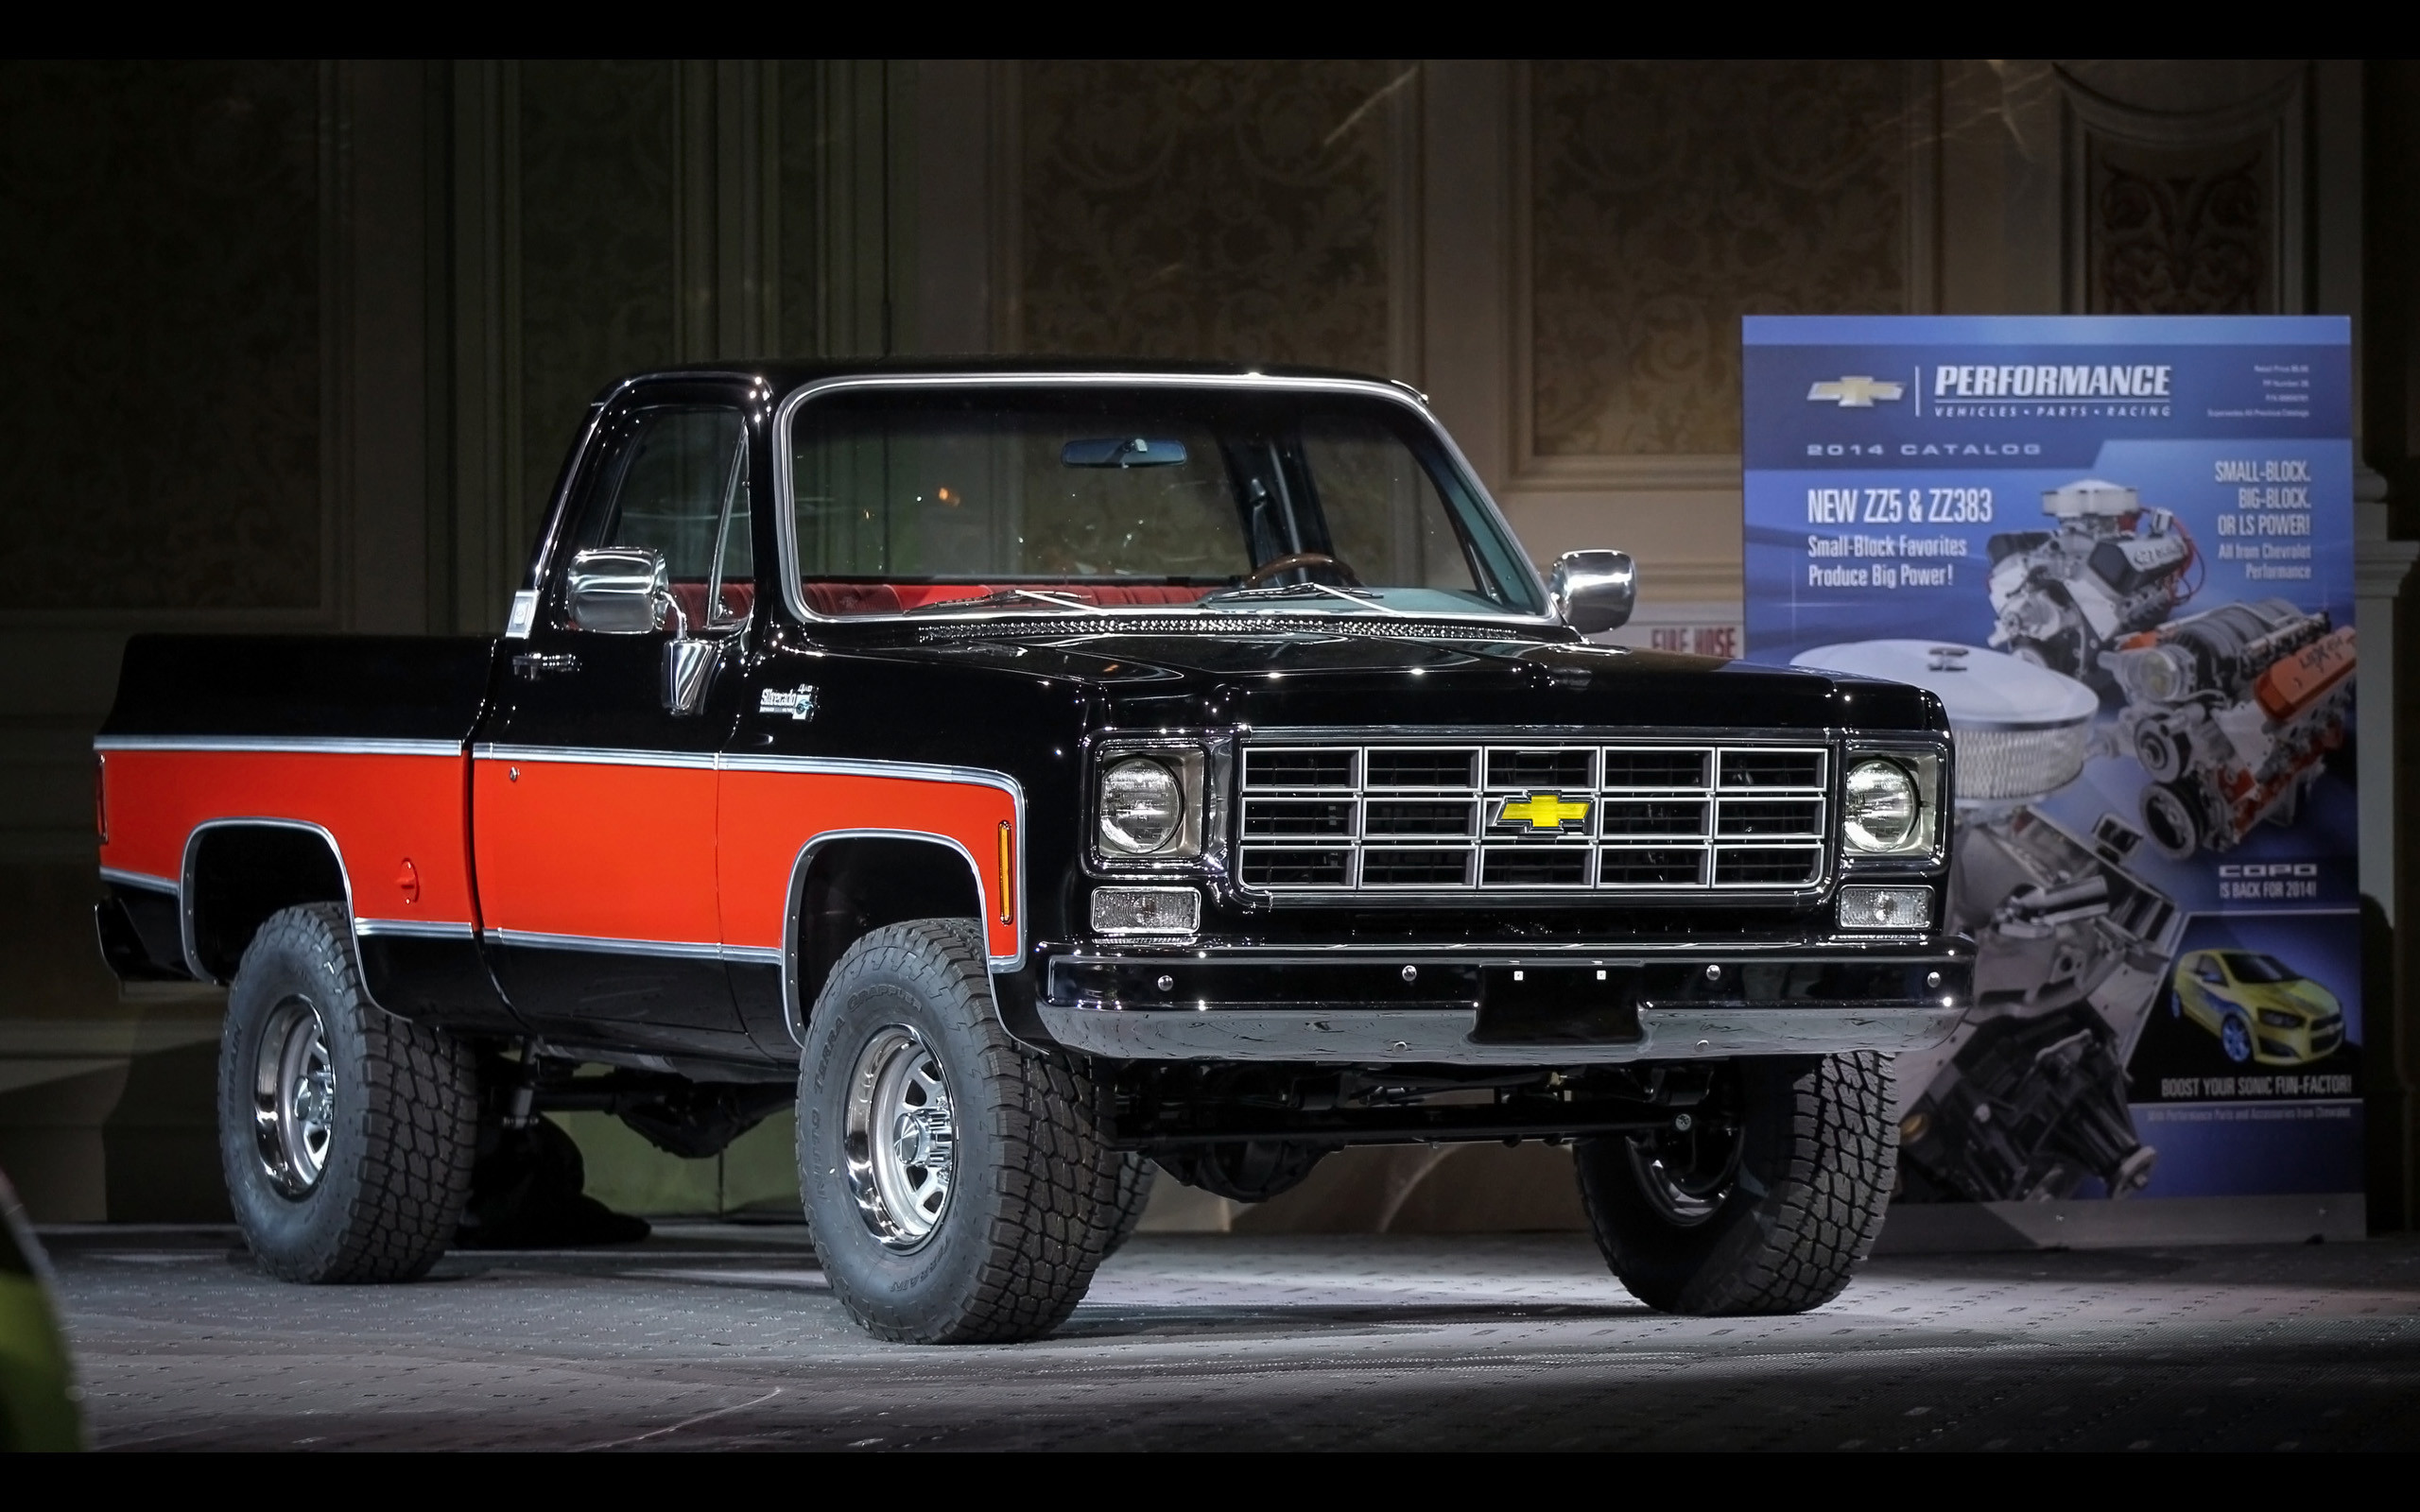 2560x1600 Chevy-truck-chevrolet-pickup--wallpapers